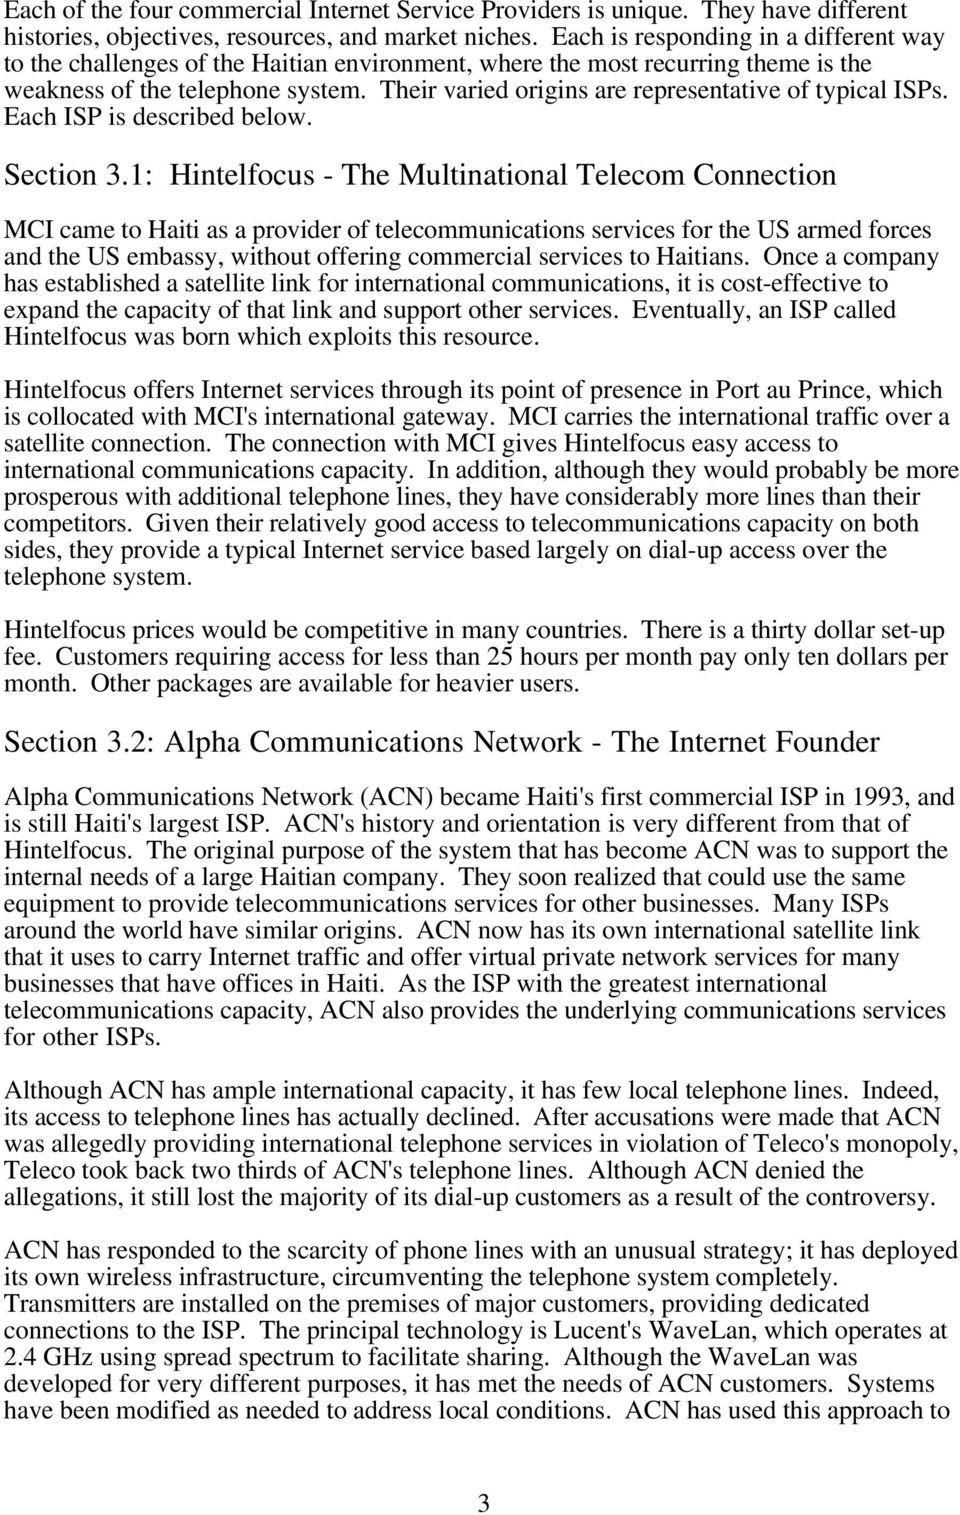 Their varied origins are representative of typical ISPs. Each ISP is described below. Section 3.